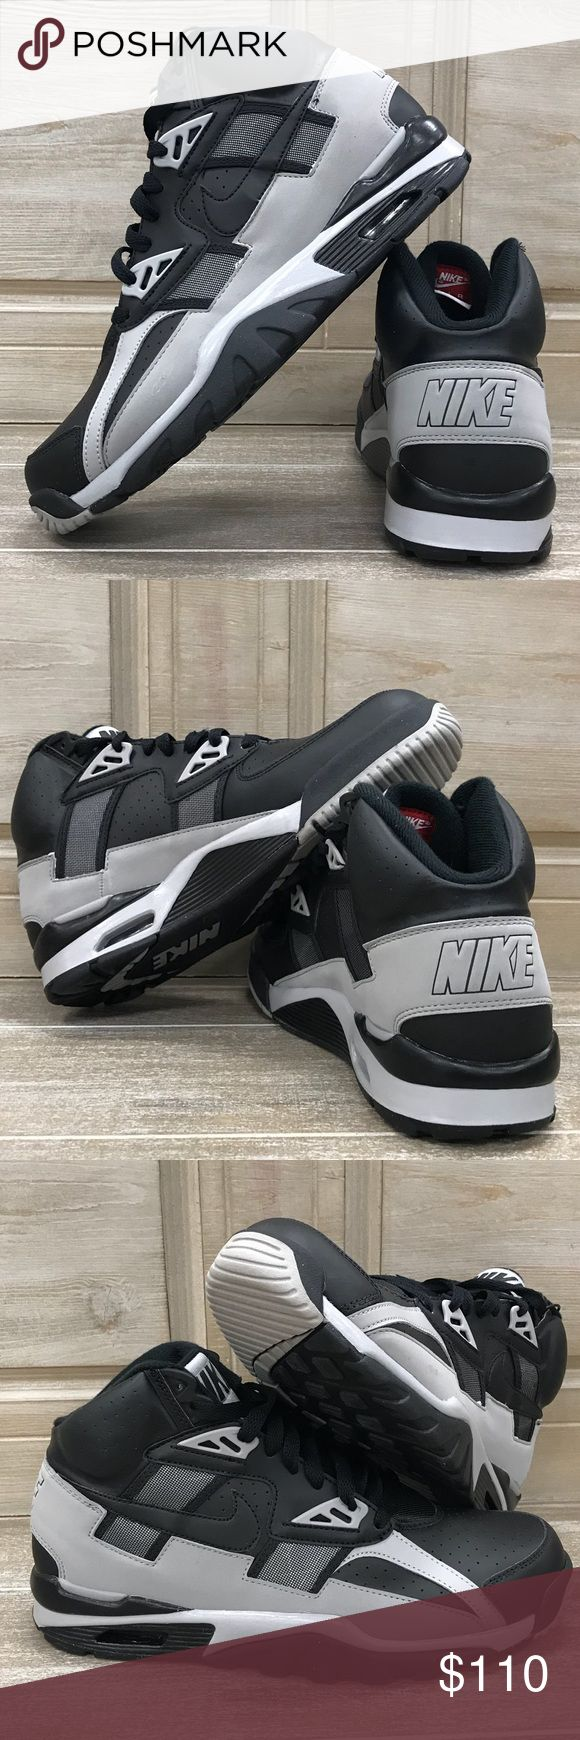 Bo Jackson Shoes BRAND NEW!!! Black and gray Bo Jackson sneakers. Men's size 8.5. Super classic shoe. No box. Great deal!!! Nike Shoes Sneakers